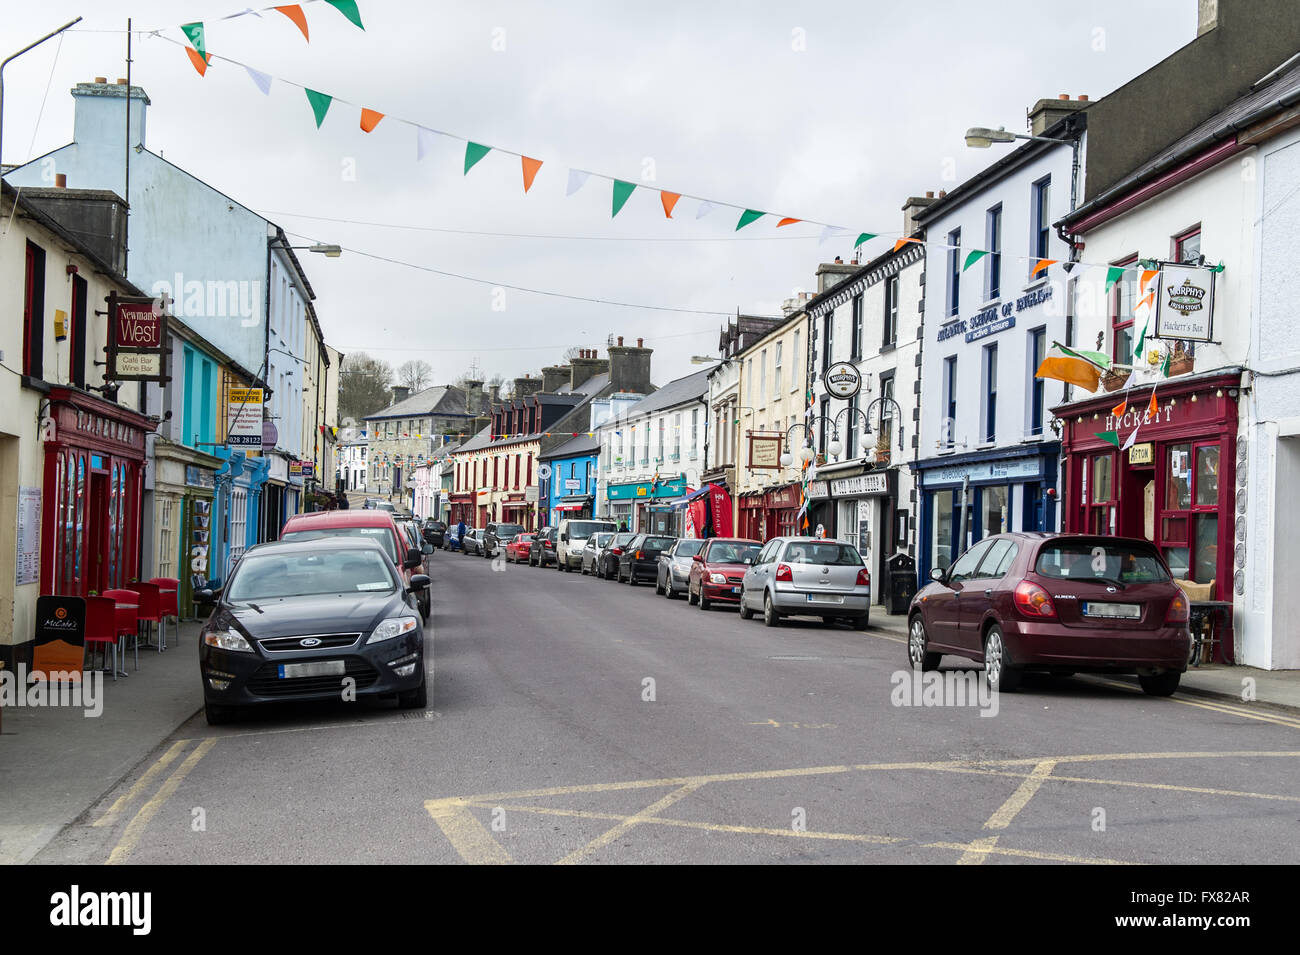 672106eee5 West Cork Street Stock Photos   West Cork Street Stock Images - Alamy